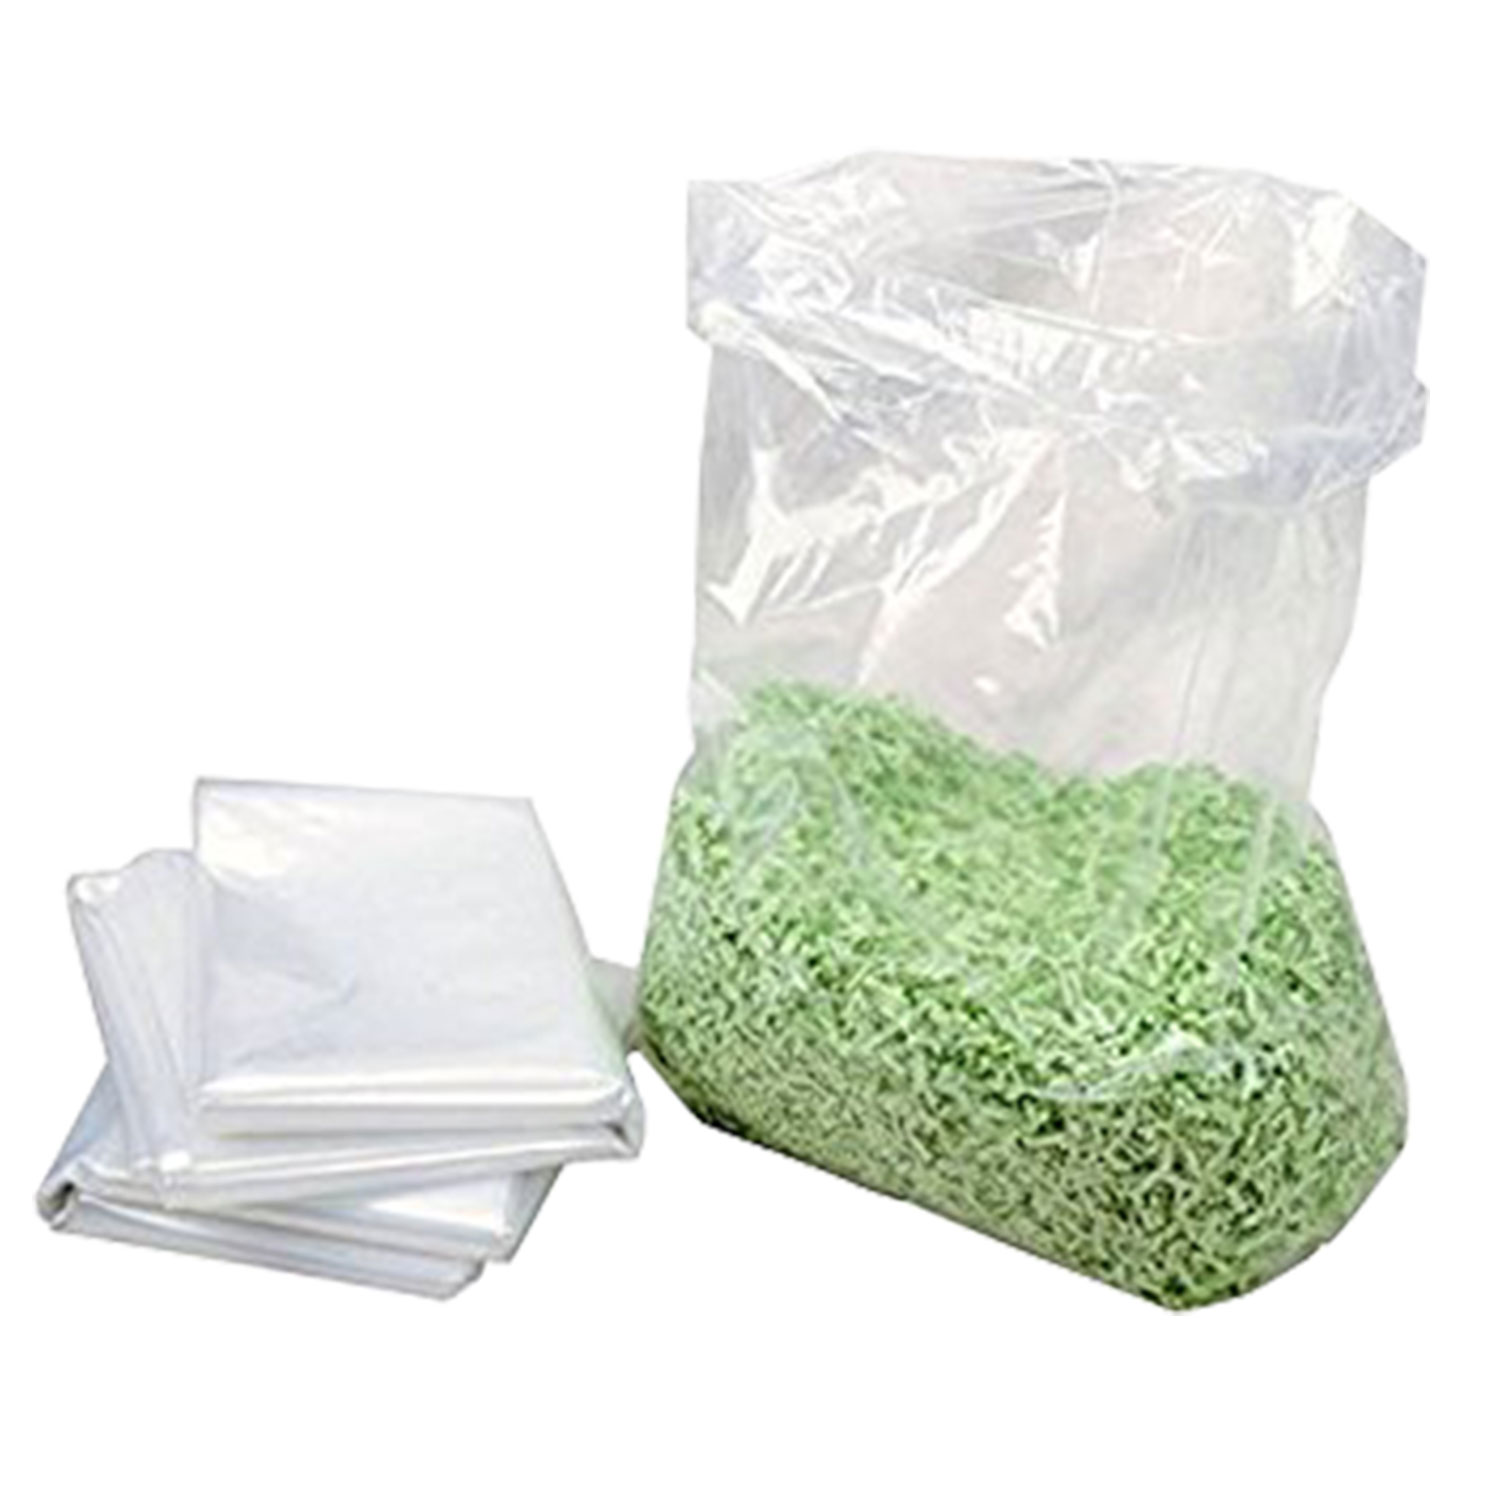 IDEAL Shredder Bags For IDEAL 4107, 4108, 4109 Shredders